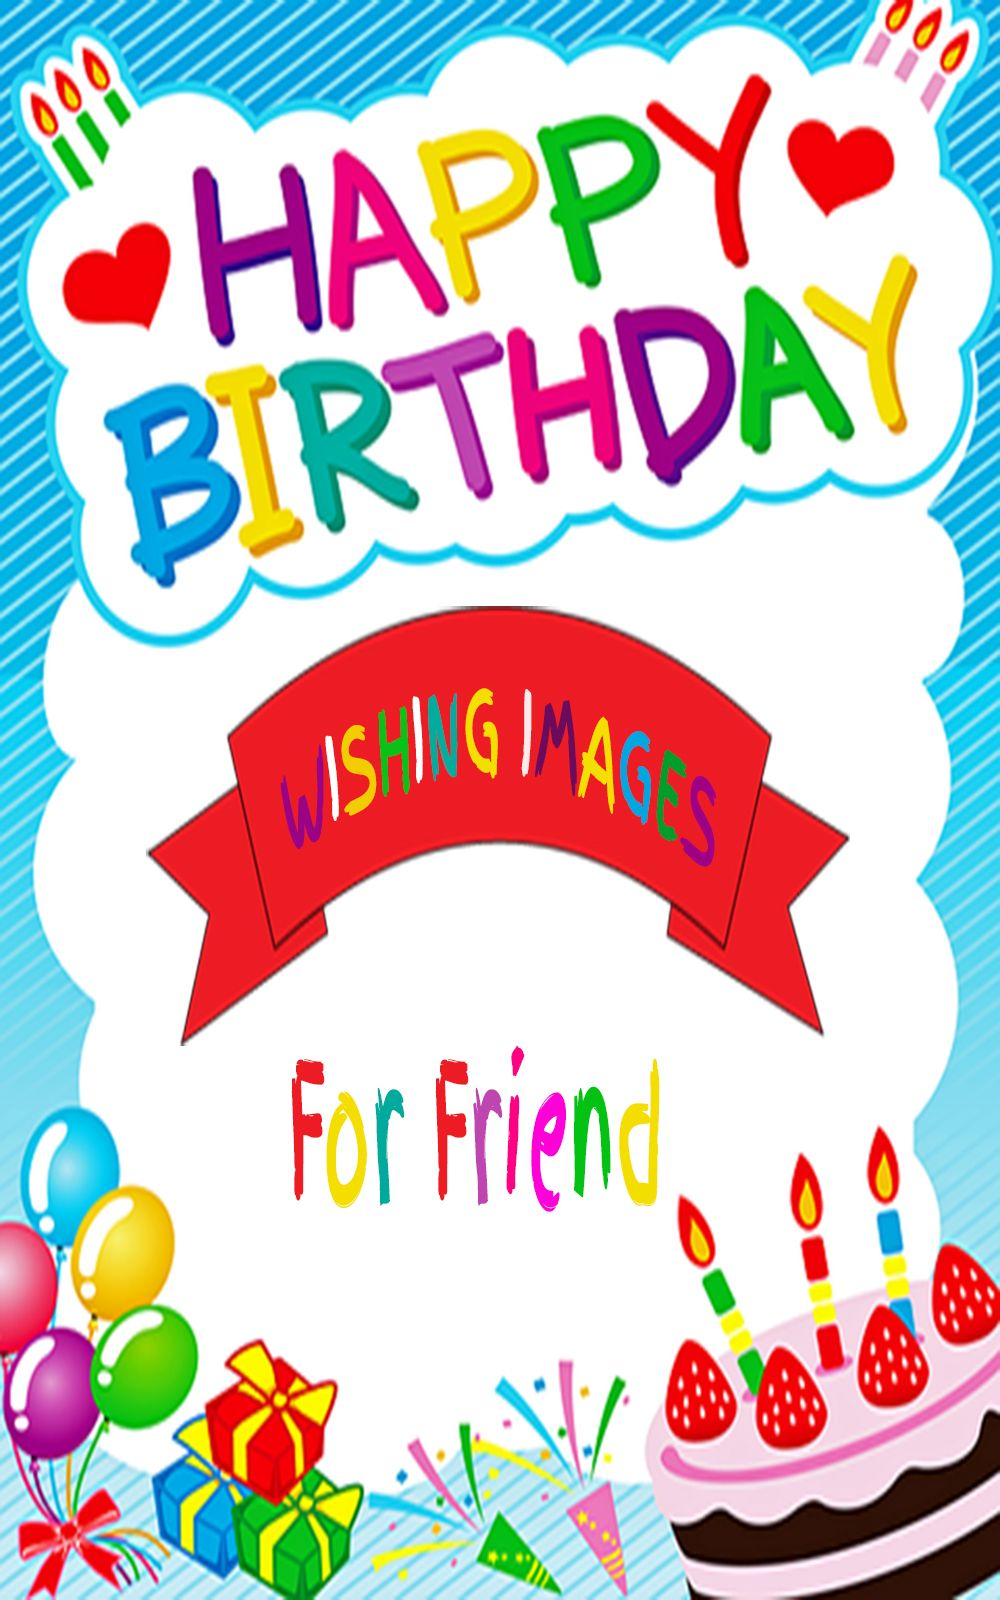 Best Happy Birthday Images For Friend - Happy Birthday Quotes For Friend